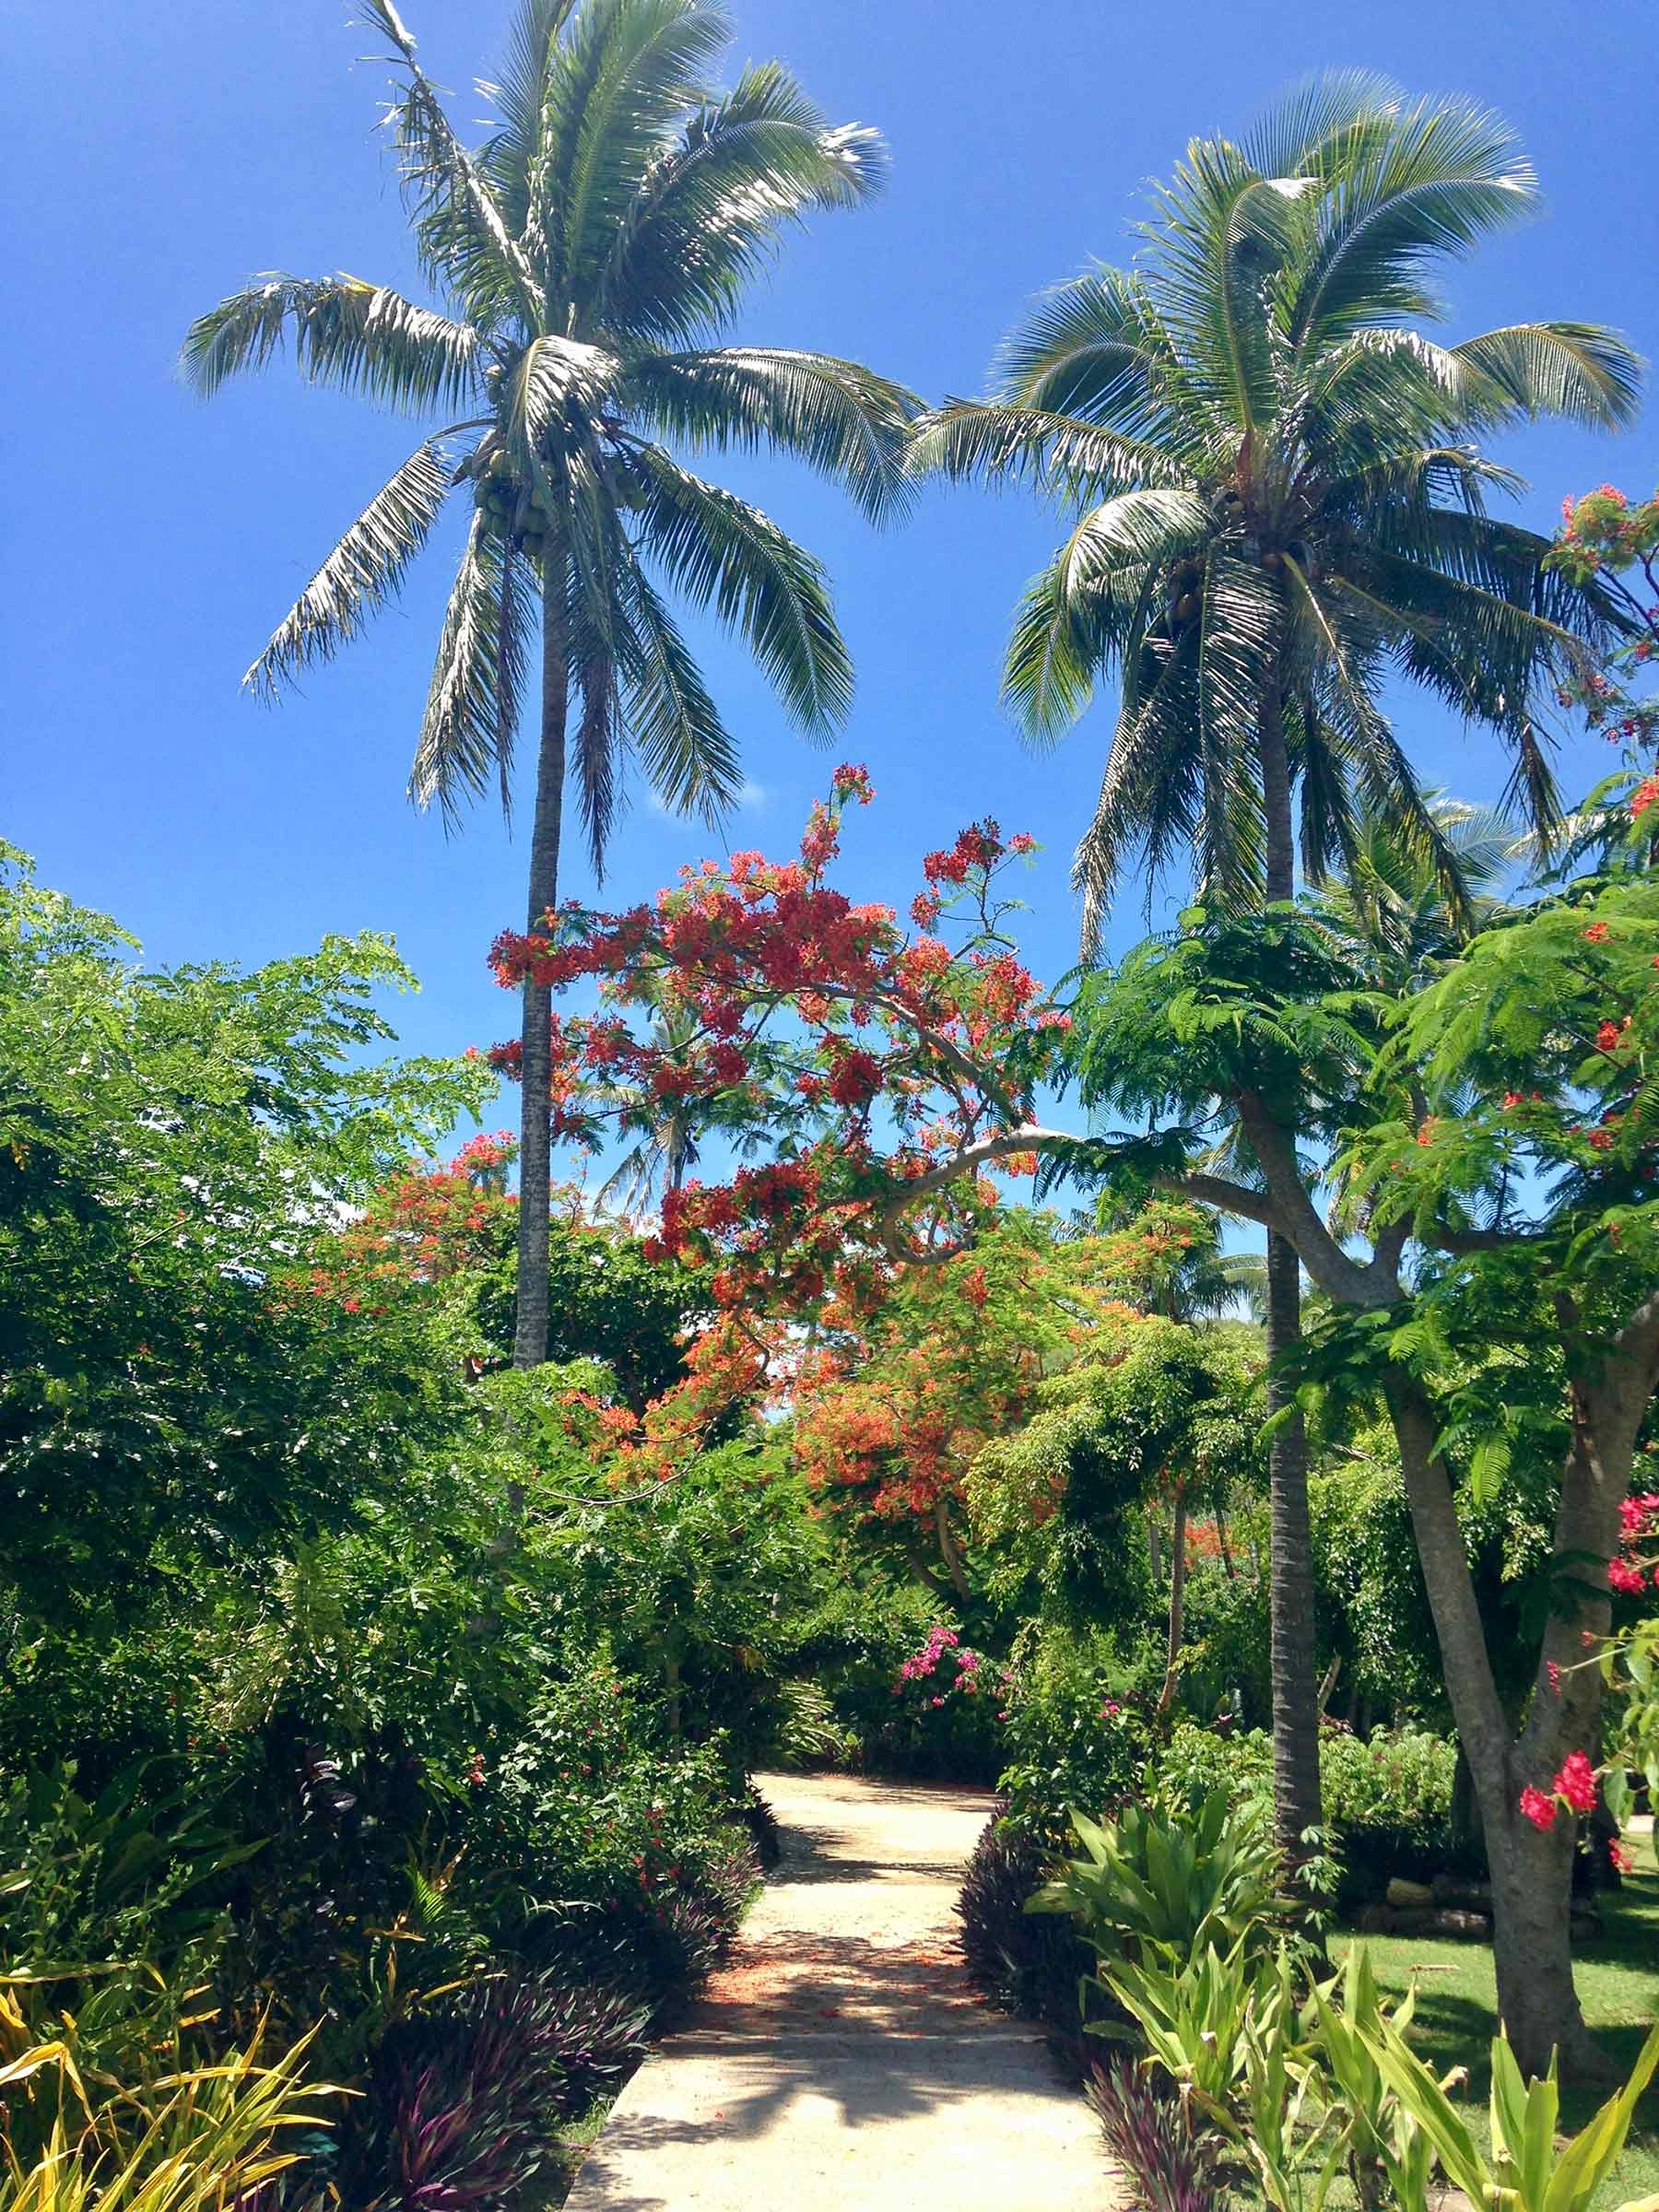 Walking through the lush green garden, surrounded by tall palm trees and blooming flowers